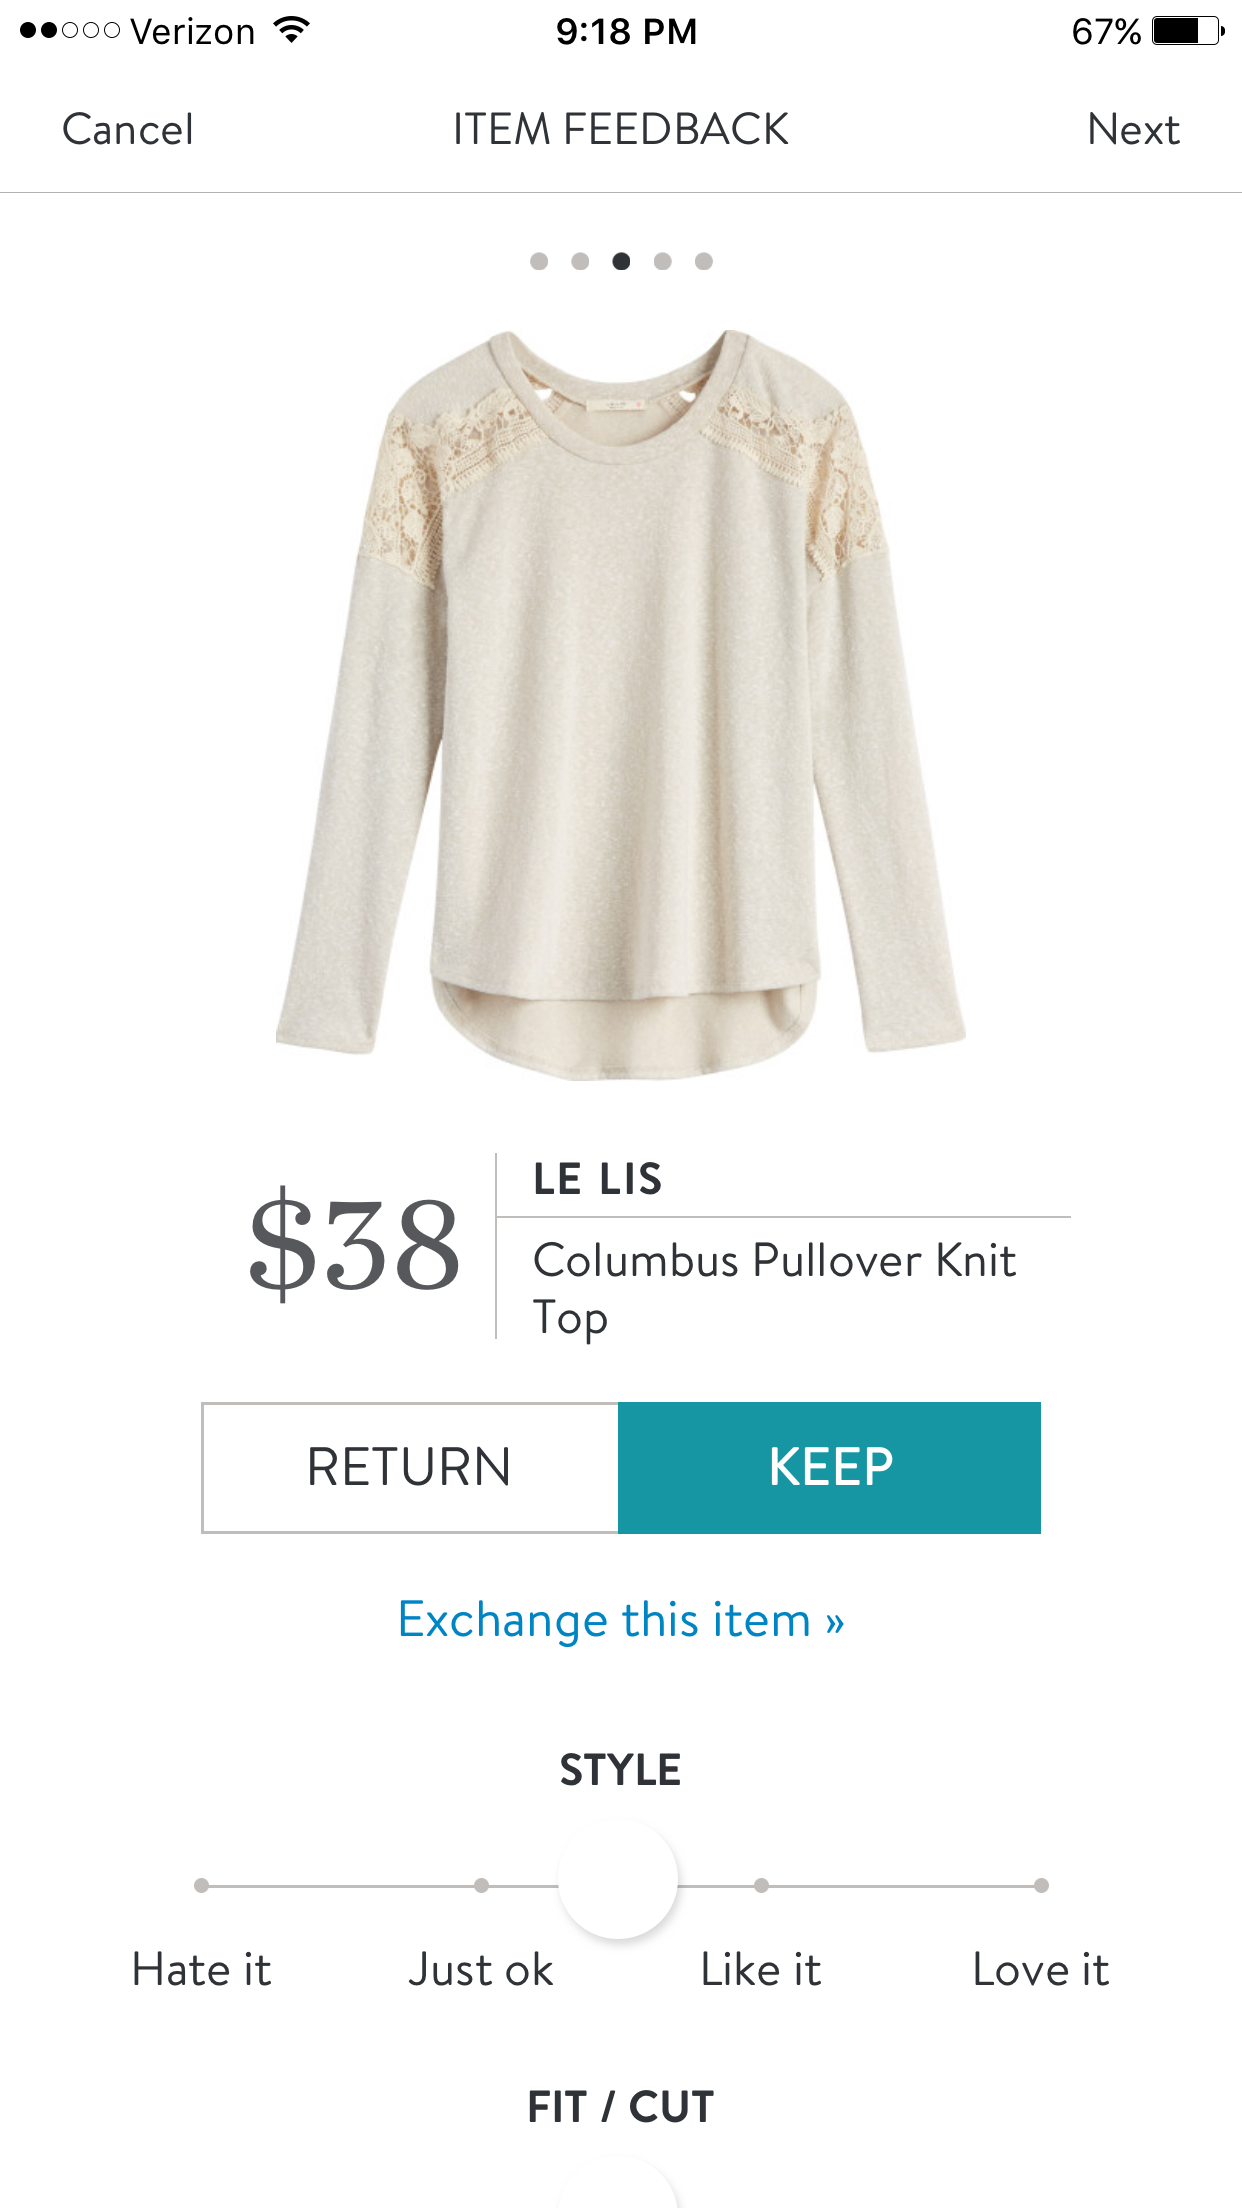 Stitch Fix Le Lis Columbus Pullover knit top #stitchfix Stitch Fix Le Lis Columbus Pullover knit top #stitchfix